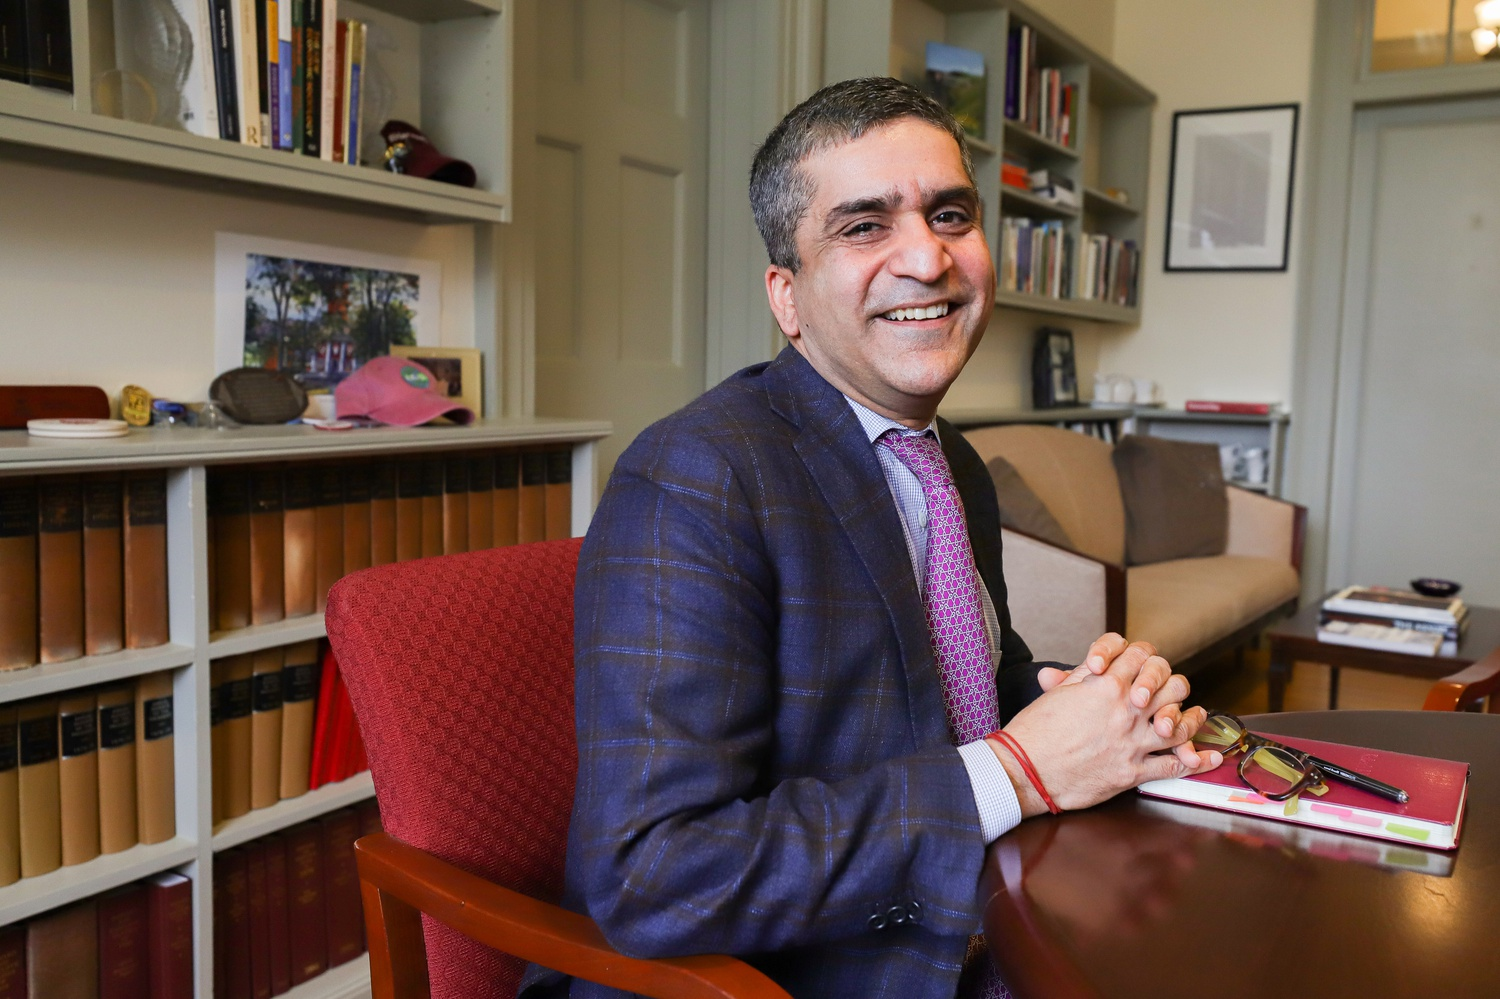 Dean of Harvard College Rakesh Khurana said in a Tuesday interview that he sees the transition to online learning as an opportunity for students and faculty to innovate in pedagogy and practice adaptability.